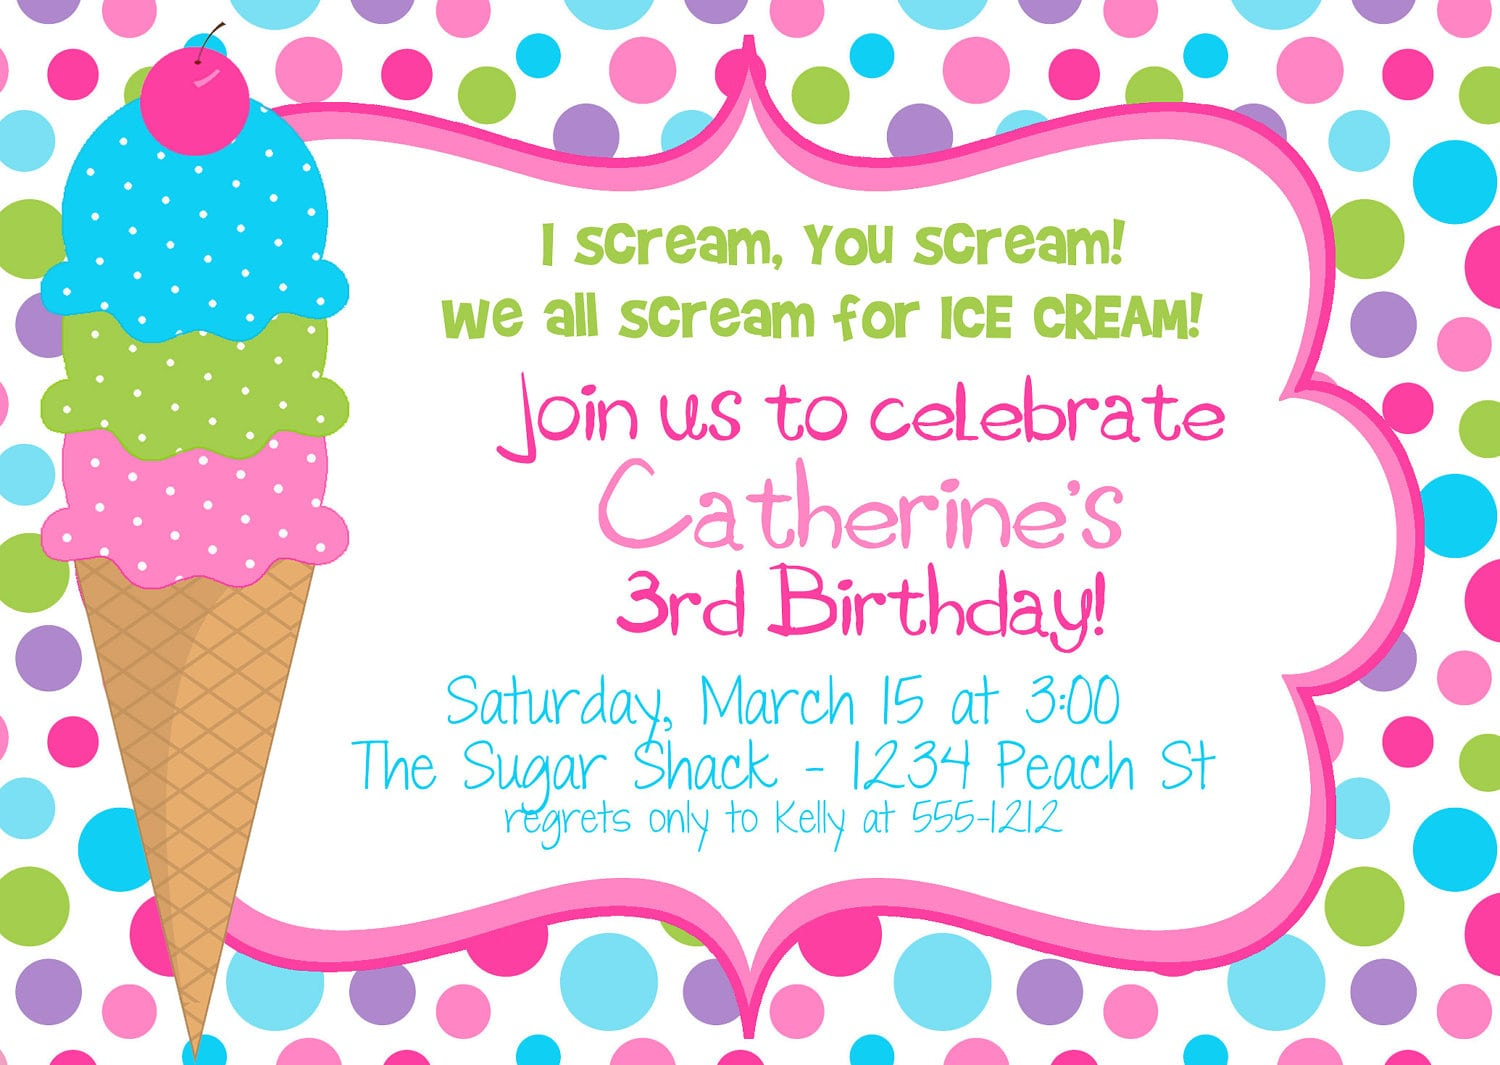 Ice Cream Themed Birthday Party Invitation With Colorful Polka Dot